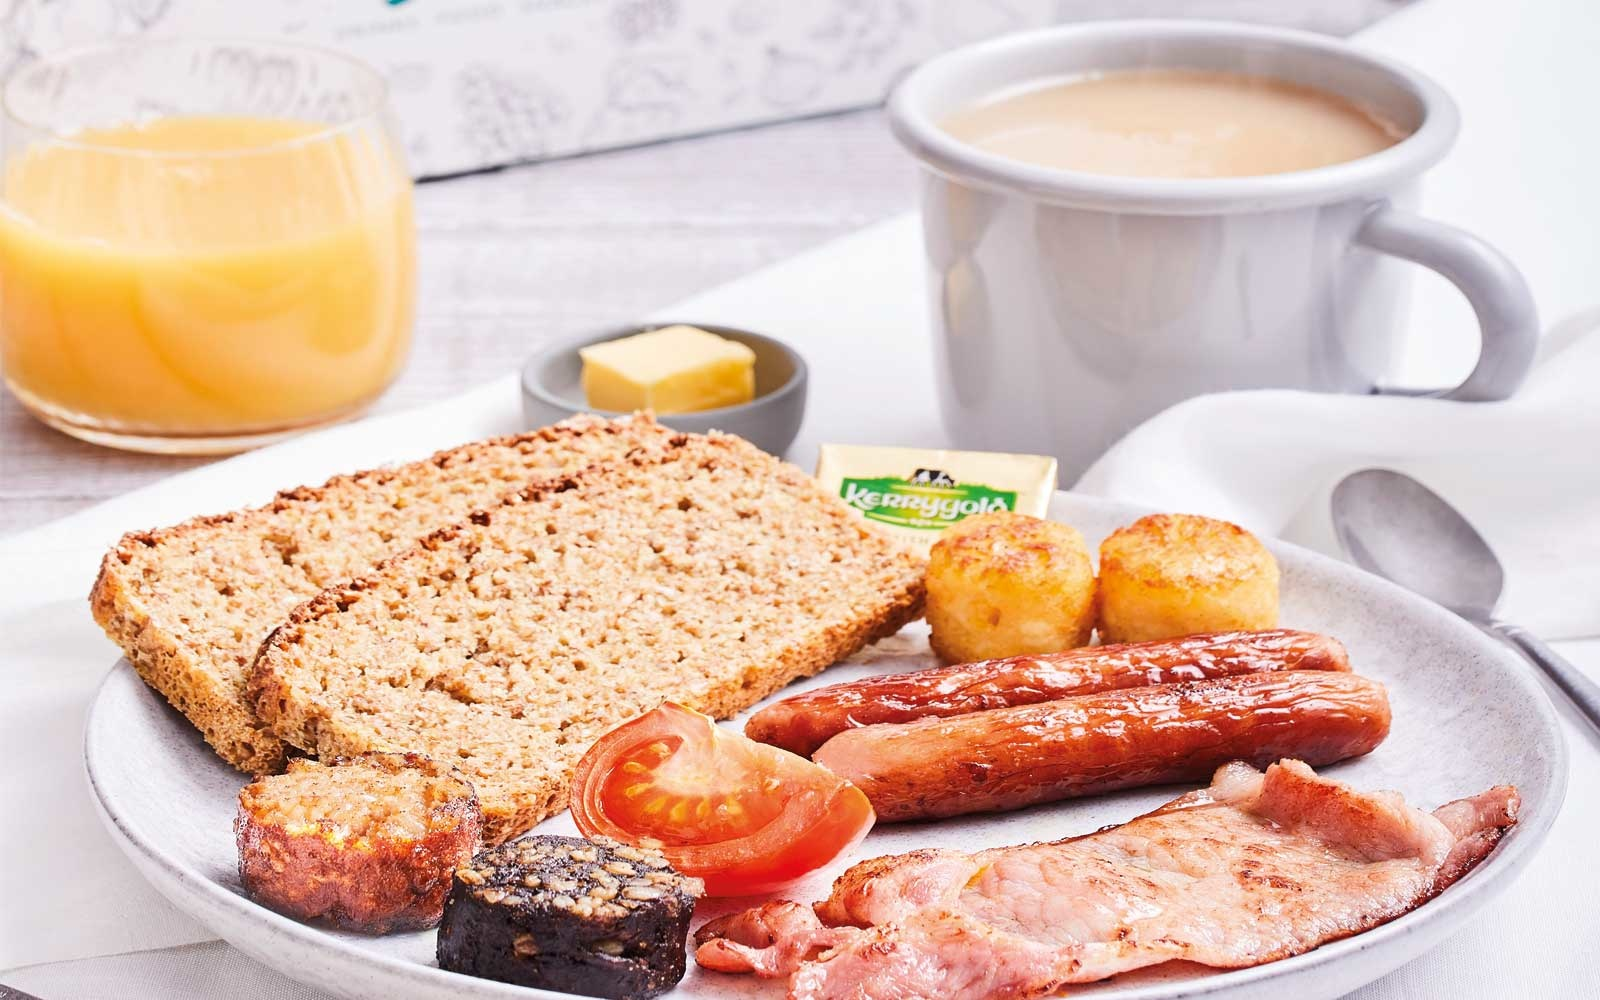 Enjoy a full Irish Breakfast when taking flights within Europe with Aer Lingus.